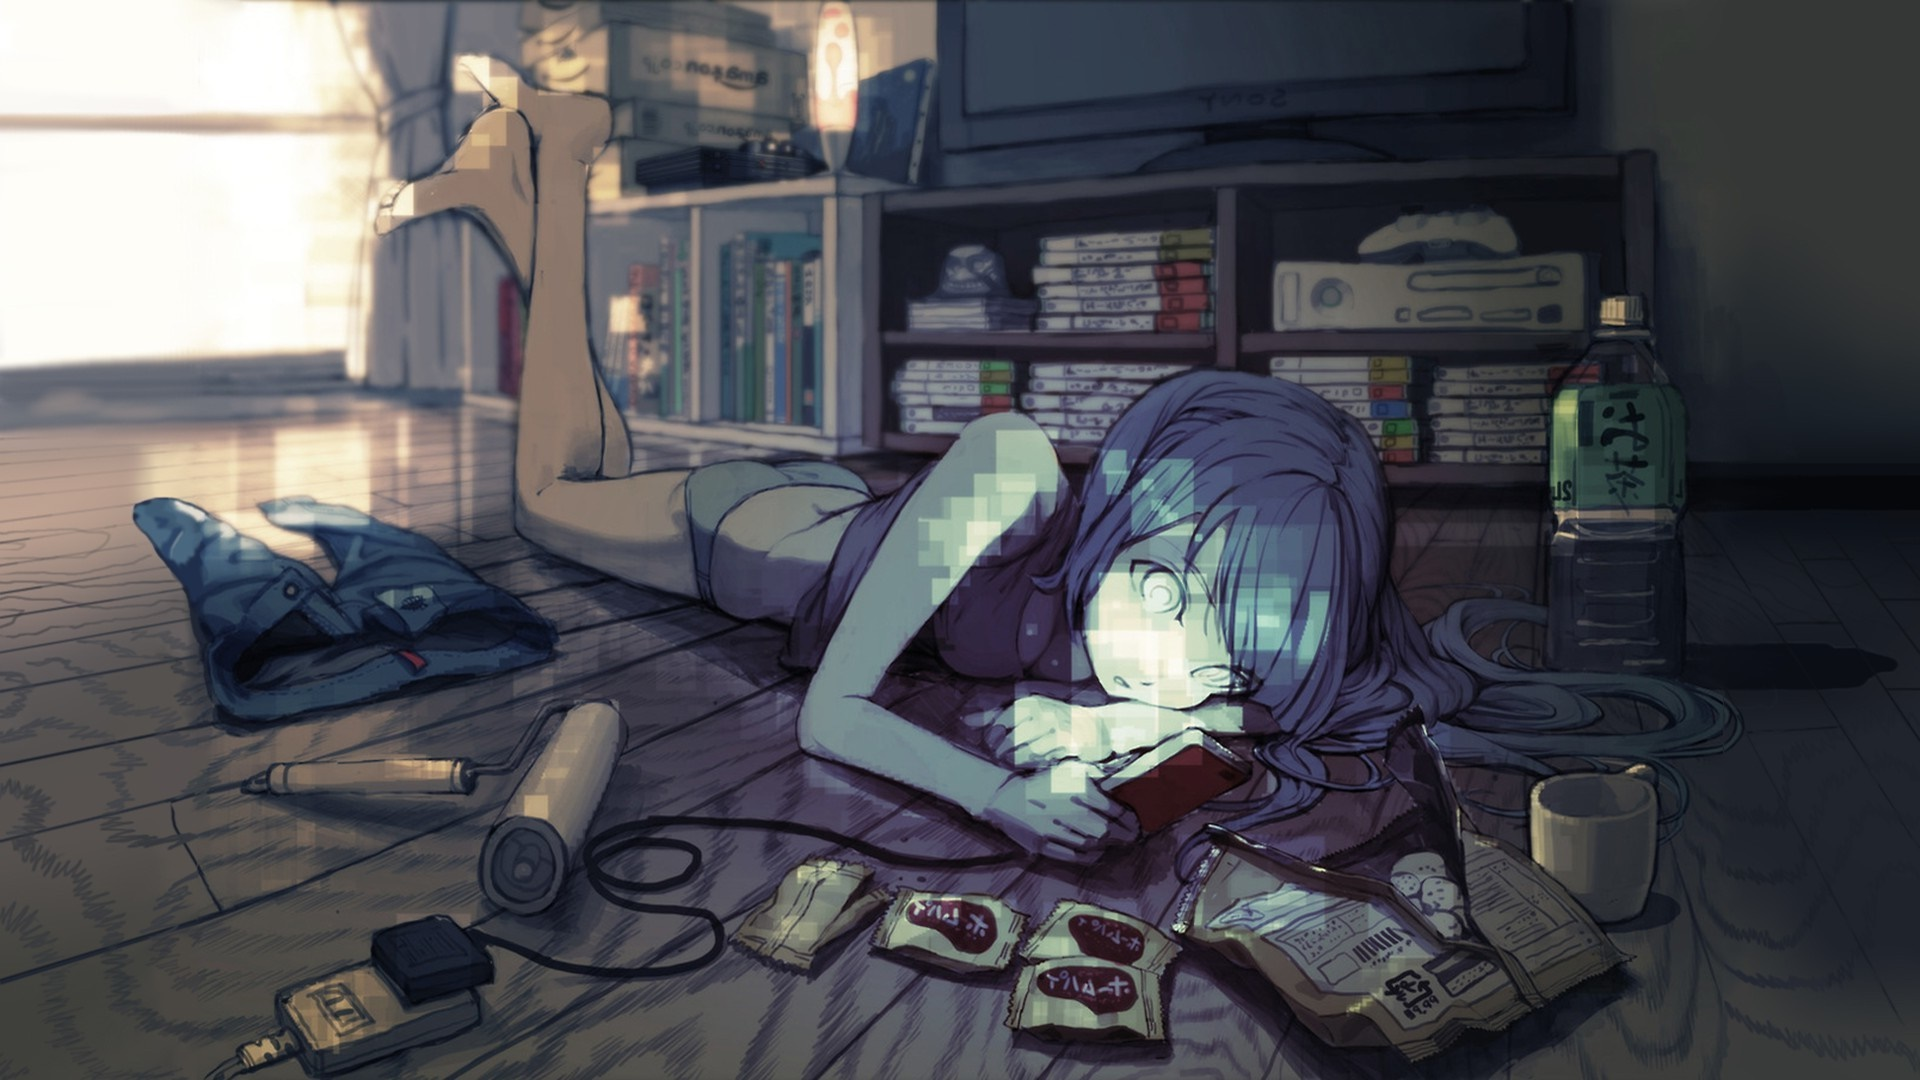 Blue Haired Anime Gamer Girl Hd Wallpaper Backiee Free Ultra Hd